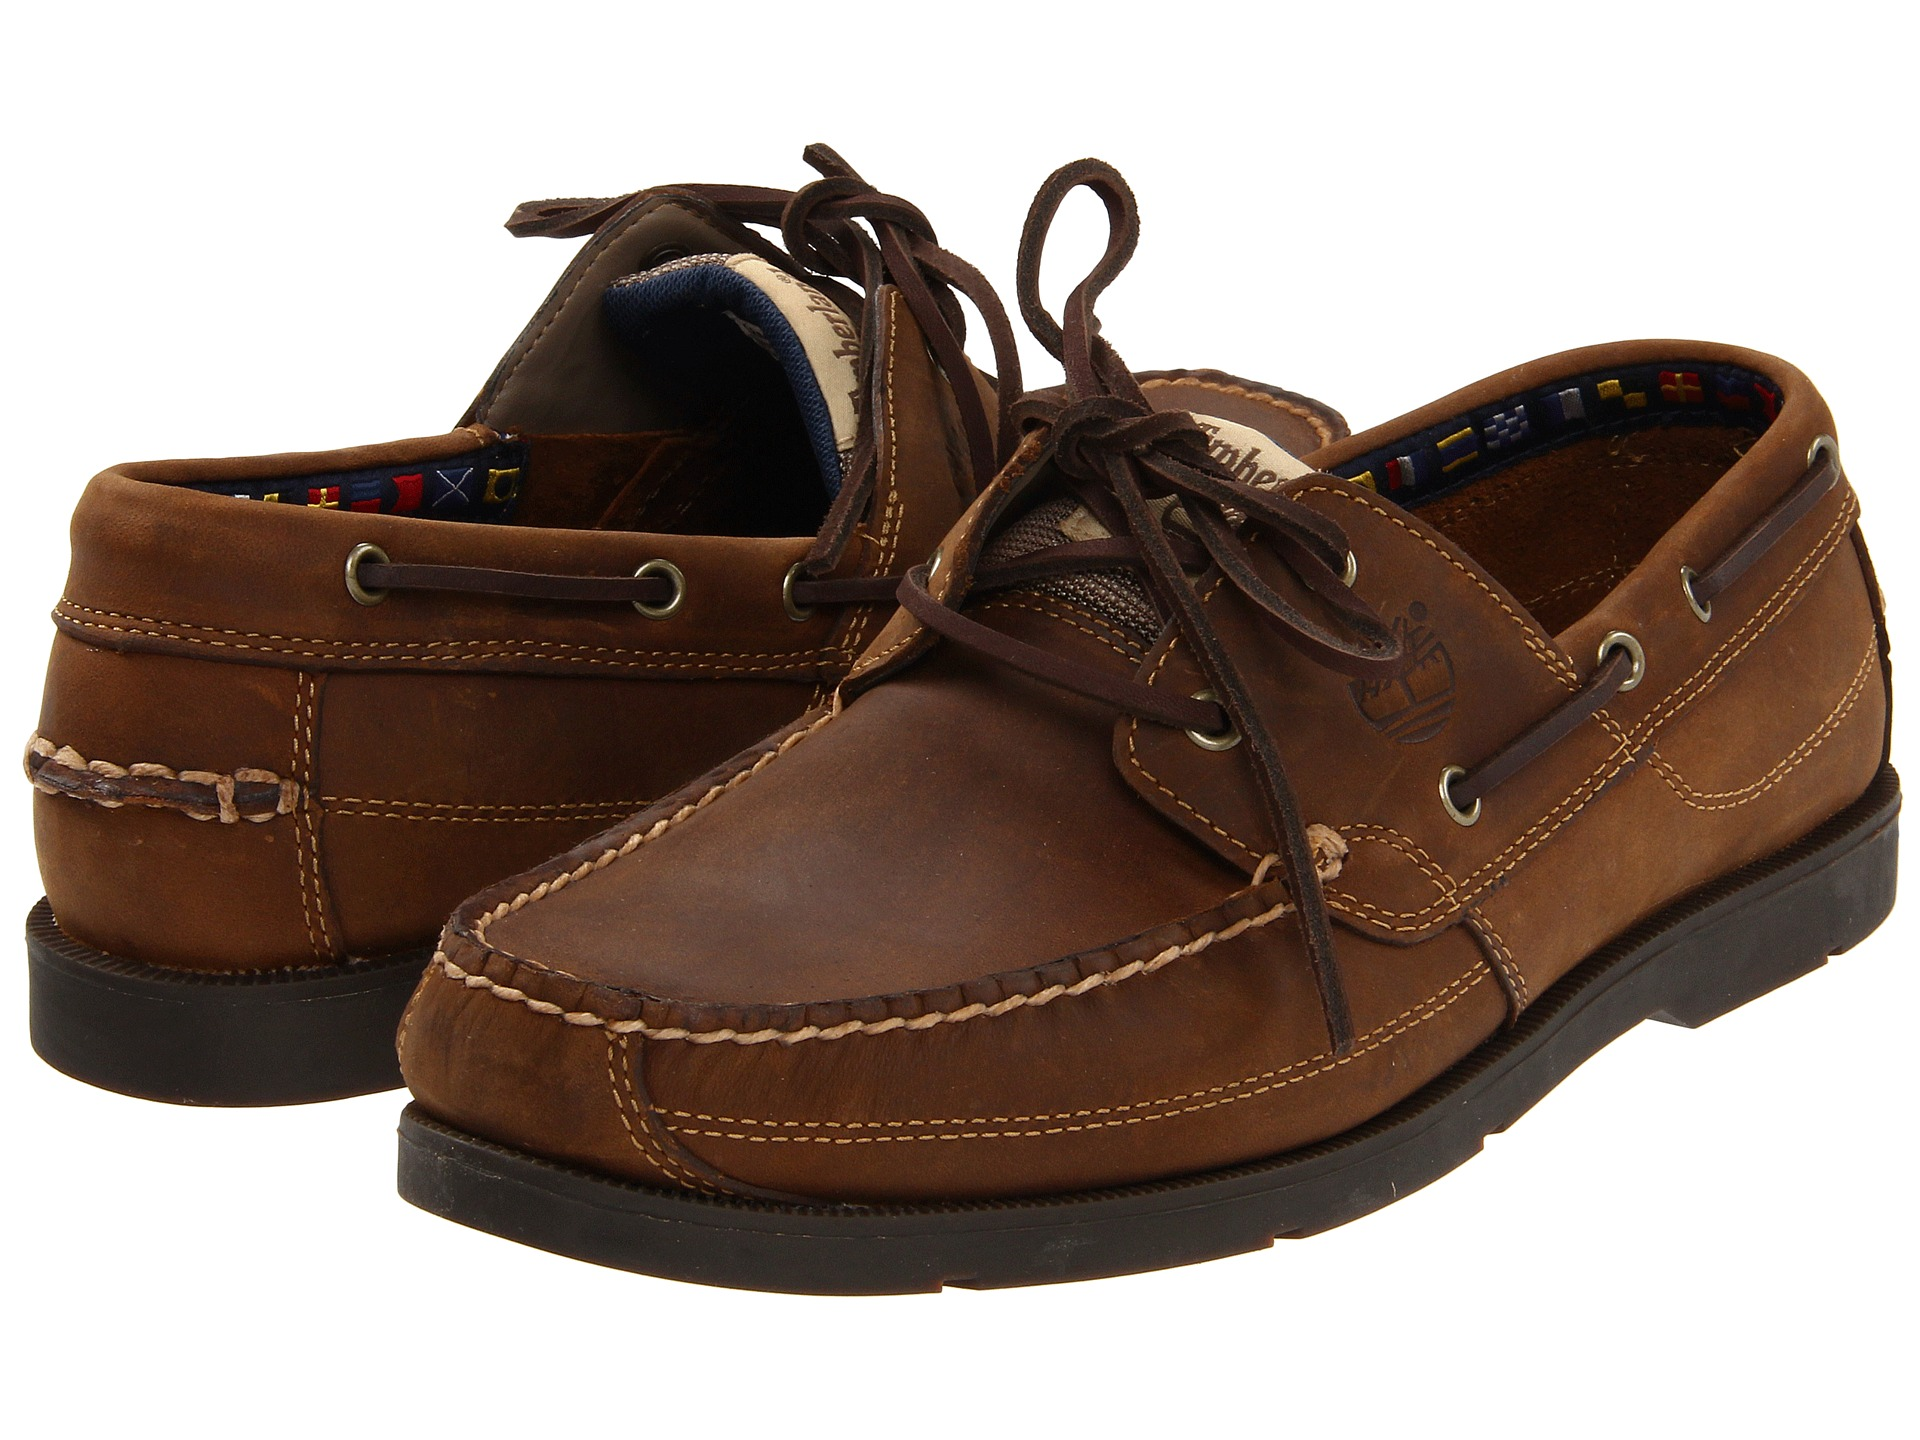 Timberland Earthkeepers Shoes Sale